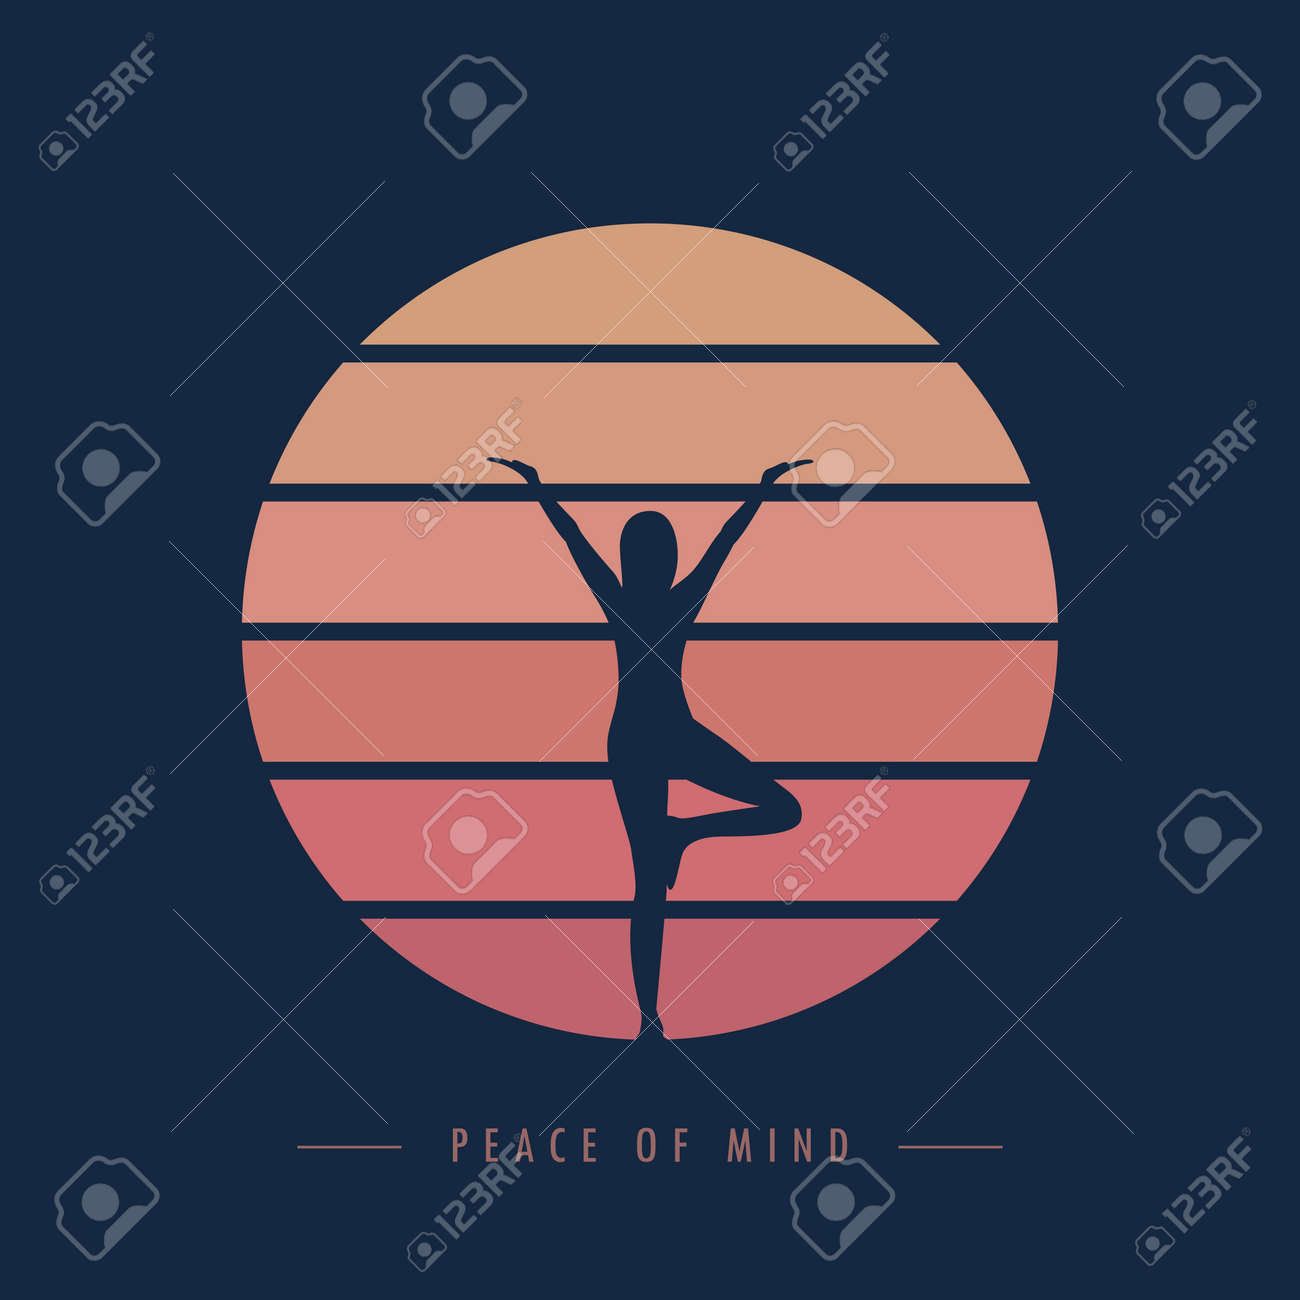 peace of mind yoga meditaion person at sunset graphic - 169232468